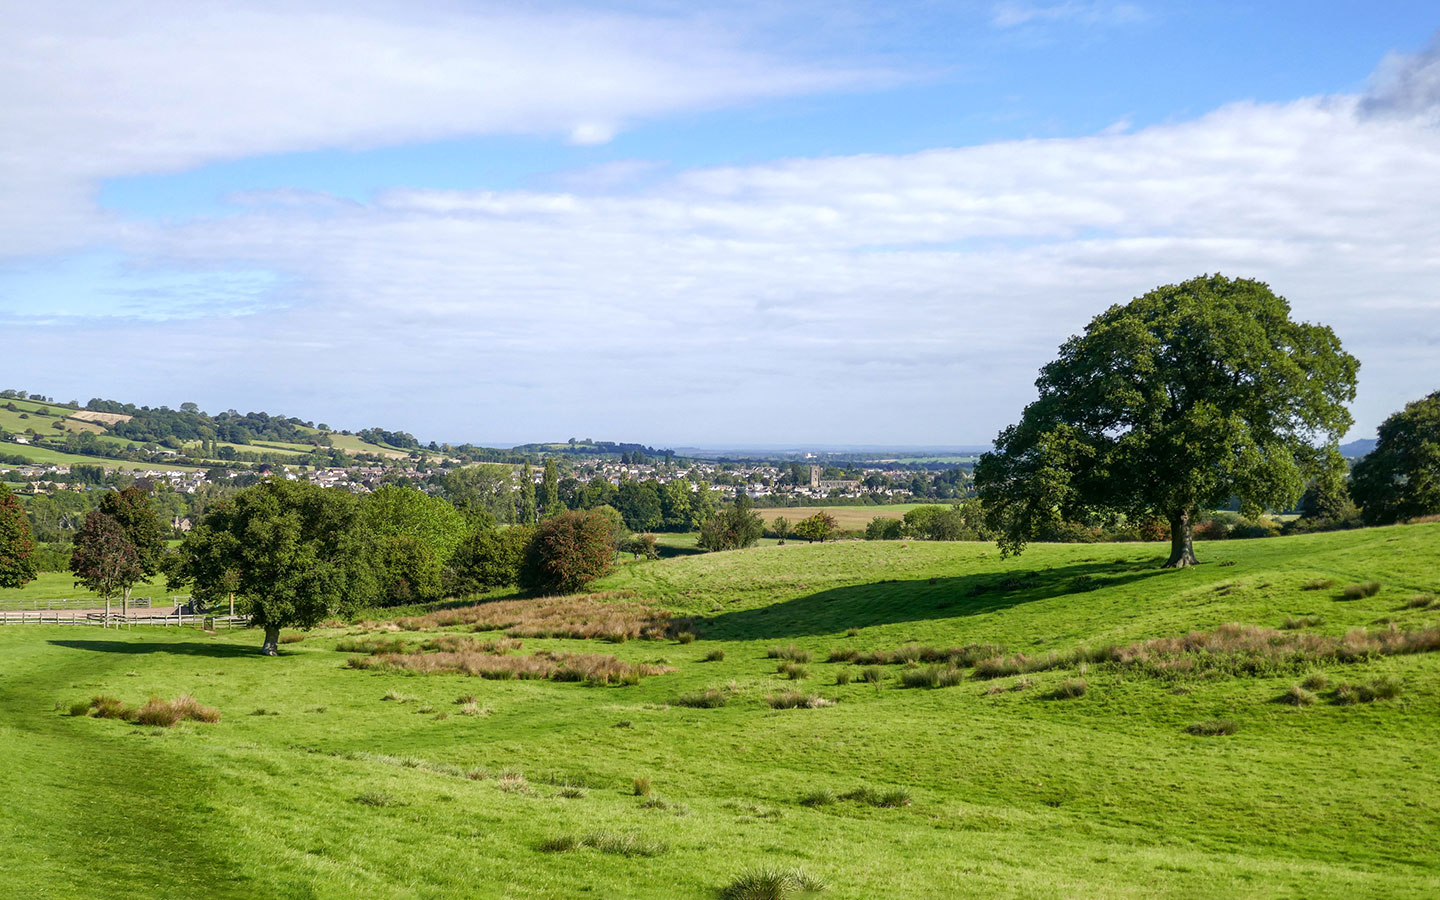 Looking back to Winchcombe from the Cotswold Way